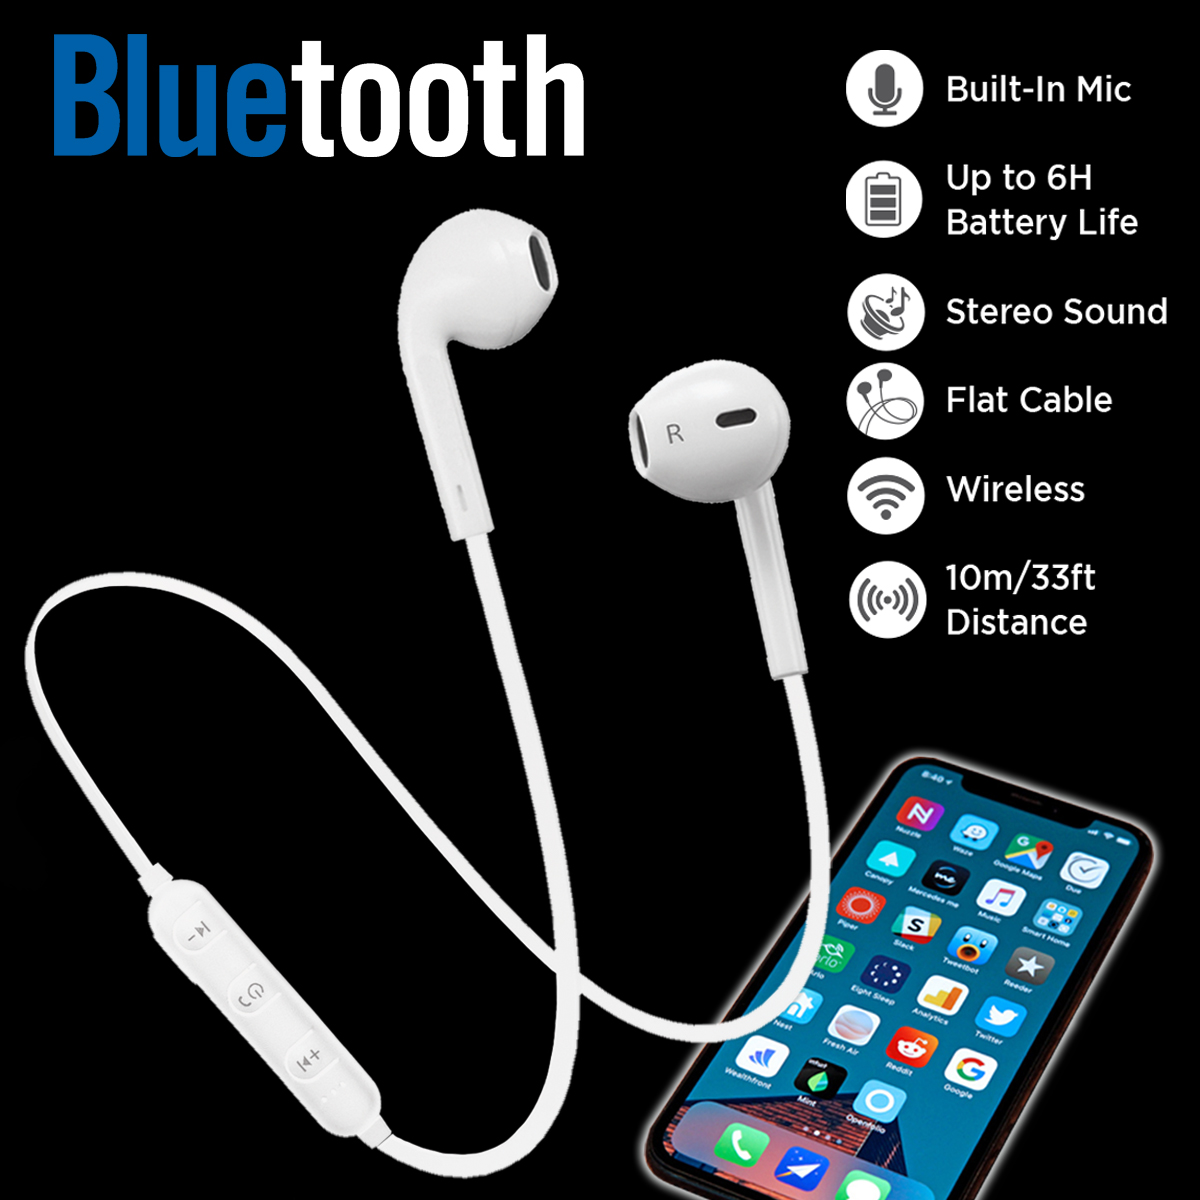 Woozik Melody Bluetooth Headphones Wireless Earbuds Stereo Earphone Sport Headsets For Iphone Xs Max Xr Xs X 8 Plus 8 7 6 Samsung And Android Devices Walmart Com Walmart Com